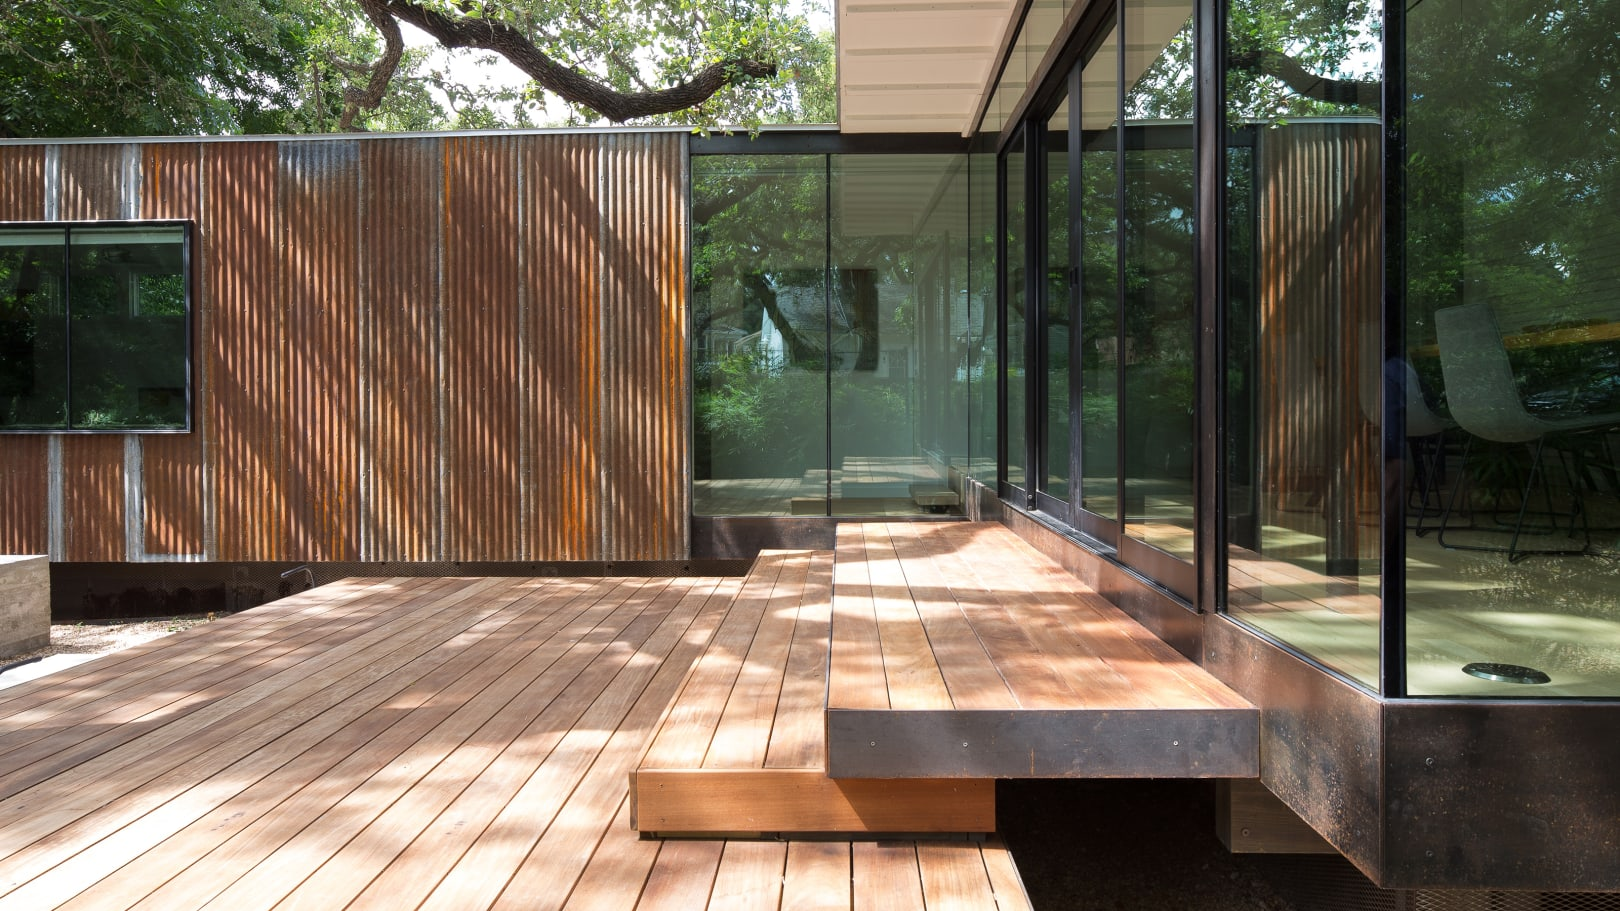 New wood terrace floats over a pea-stone courtyard.